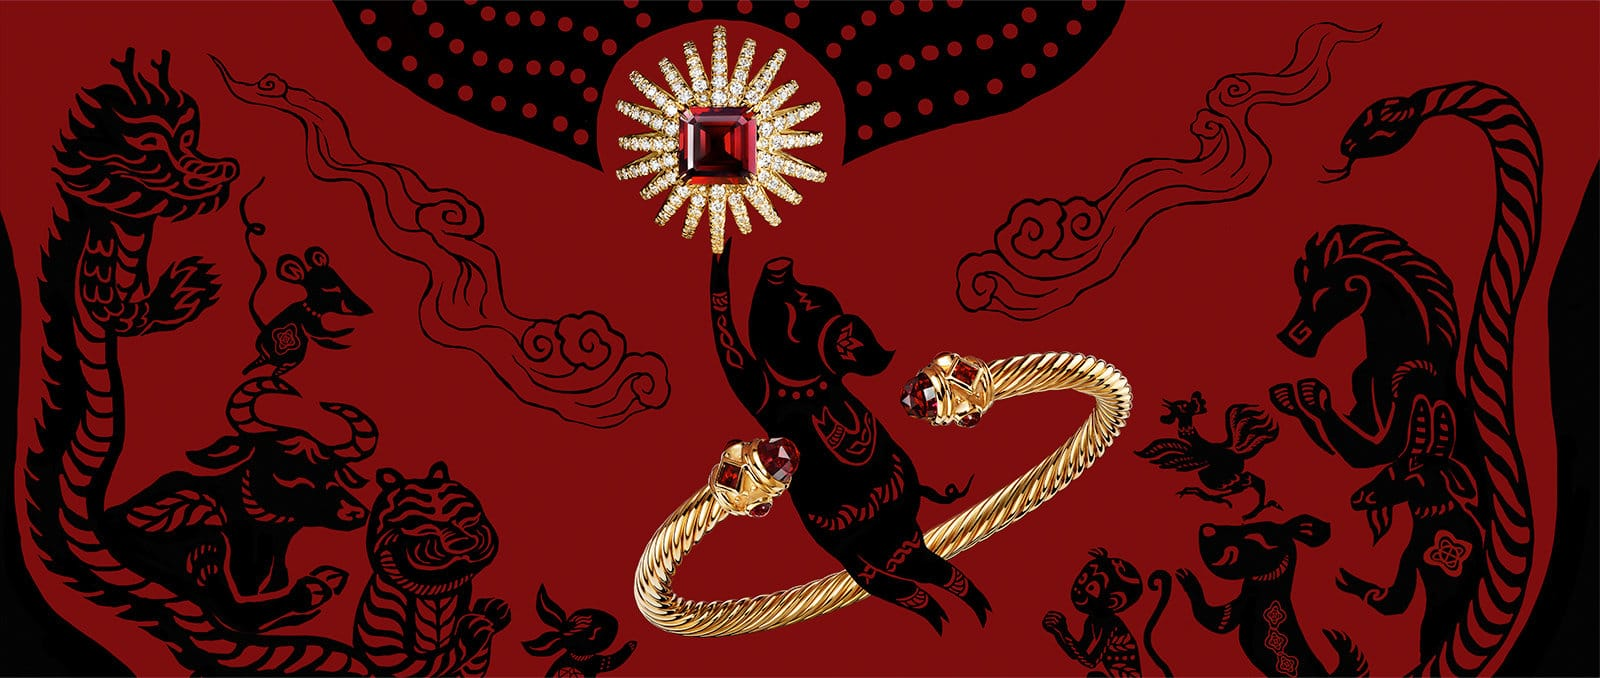 A red-and-black illustration with Chinese zodiac animals, including a pig. David Yurman Starburst designs in 18K yellow gold with garnet and a Cable bracelet in 18K gold are placed on top of the illustration.